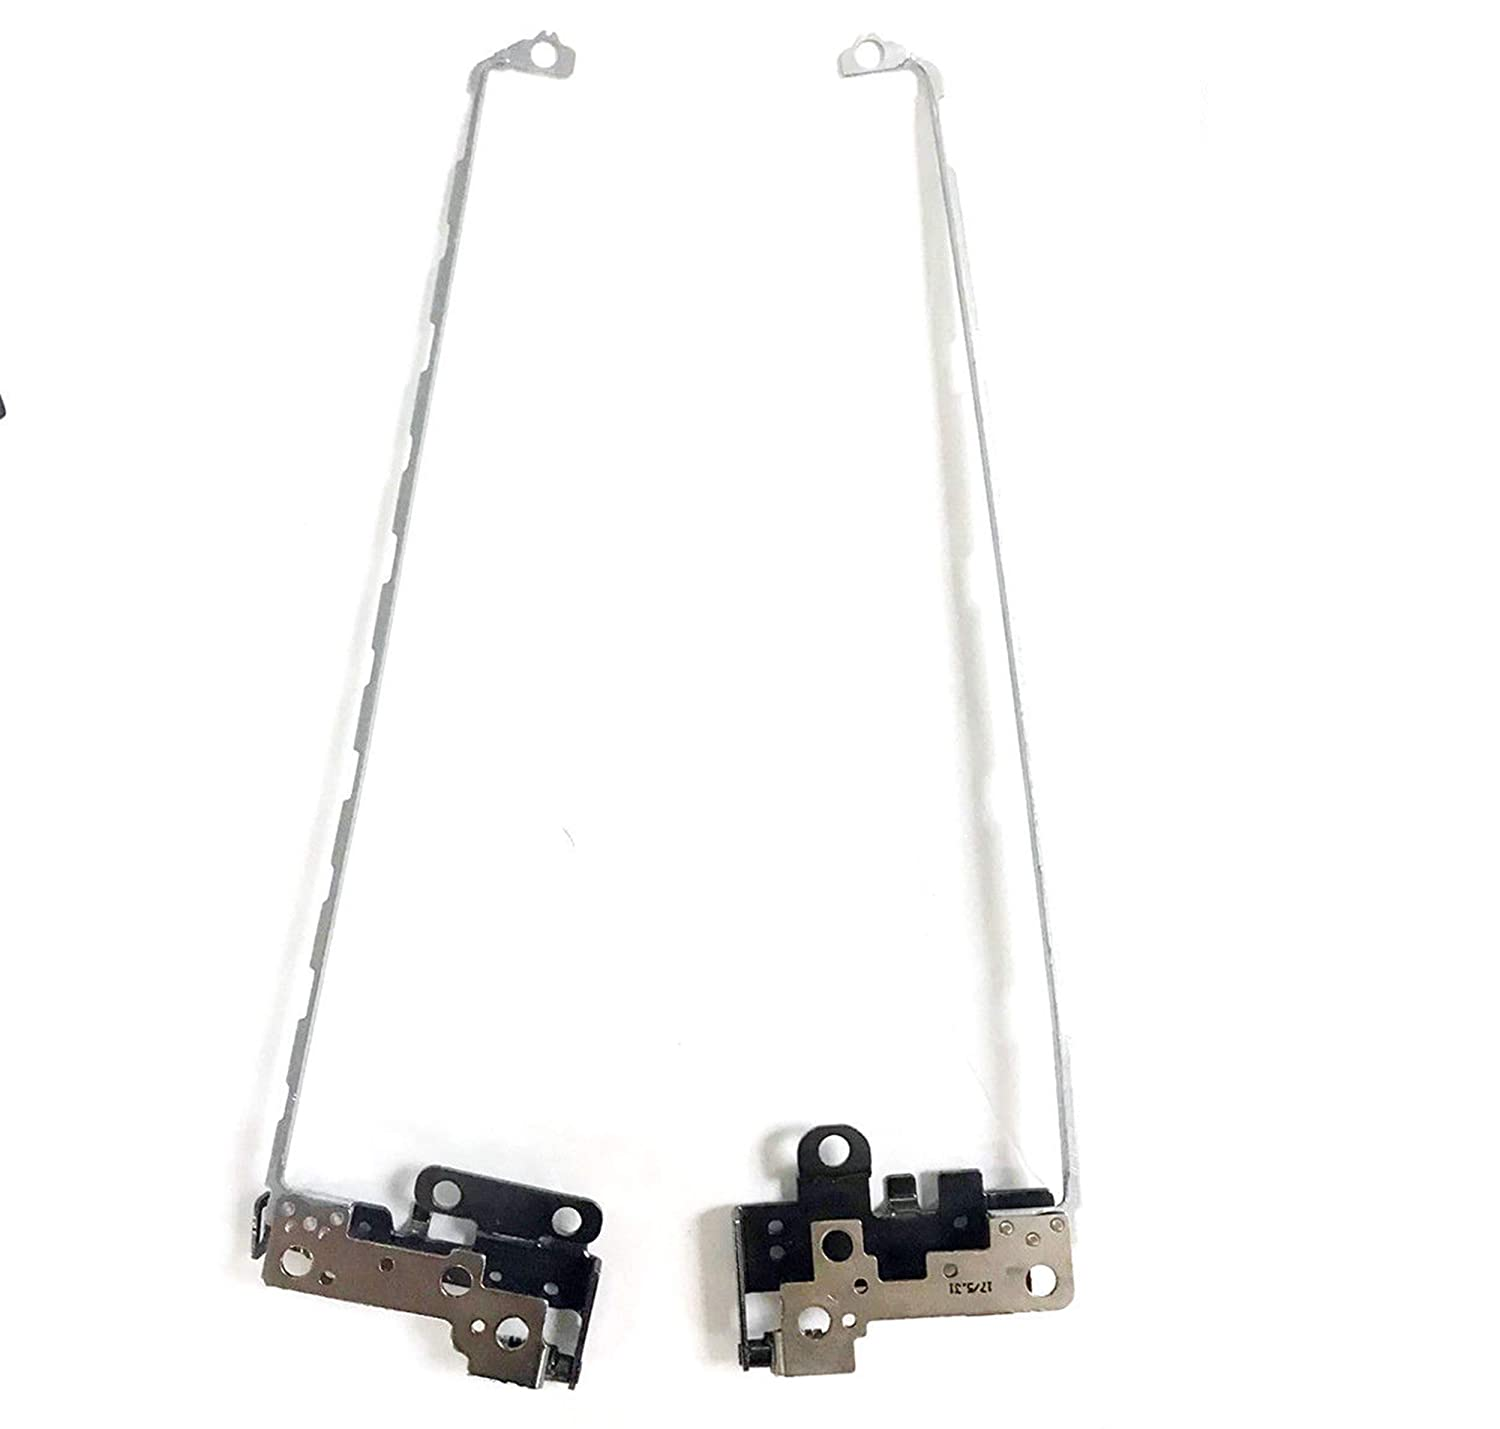 New for HP 17-X 17-X115DX 17-X007CY 17-X114DX 17-X116DX LCD Hinges 856599-001